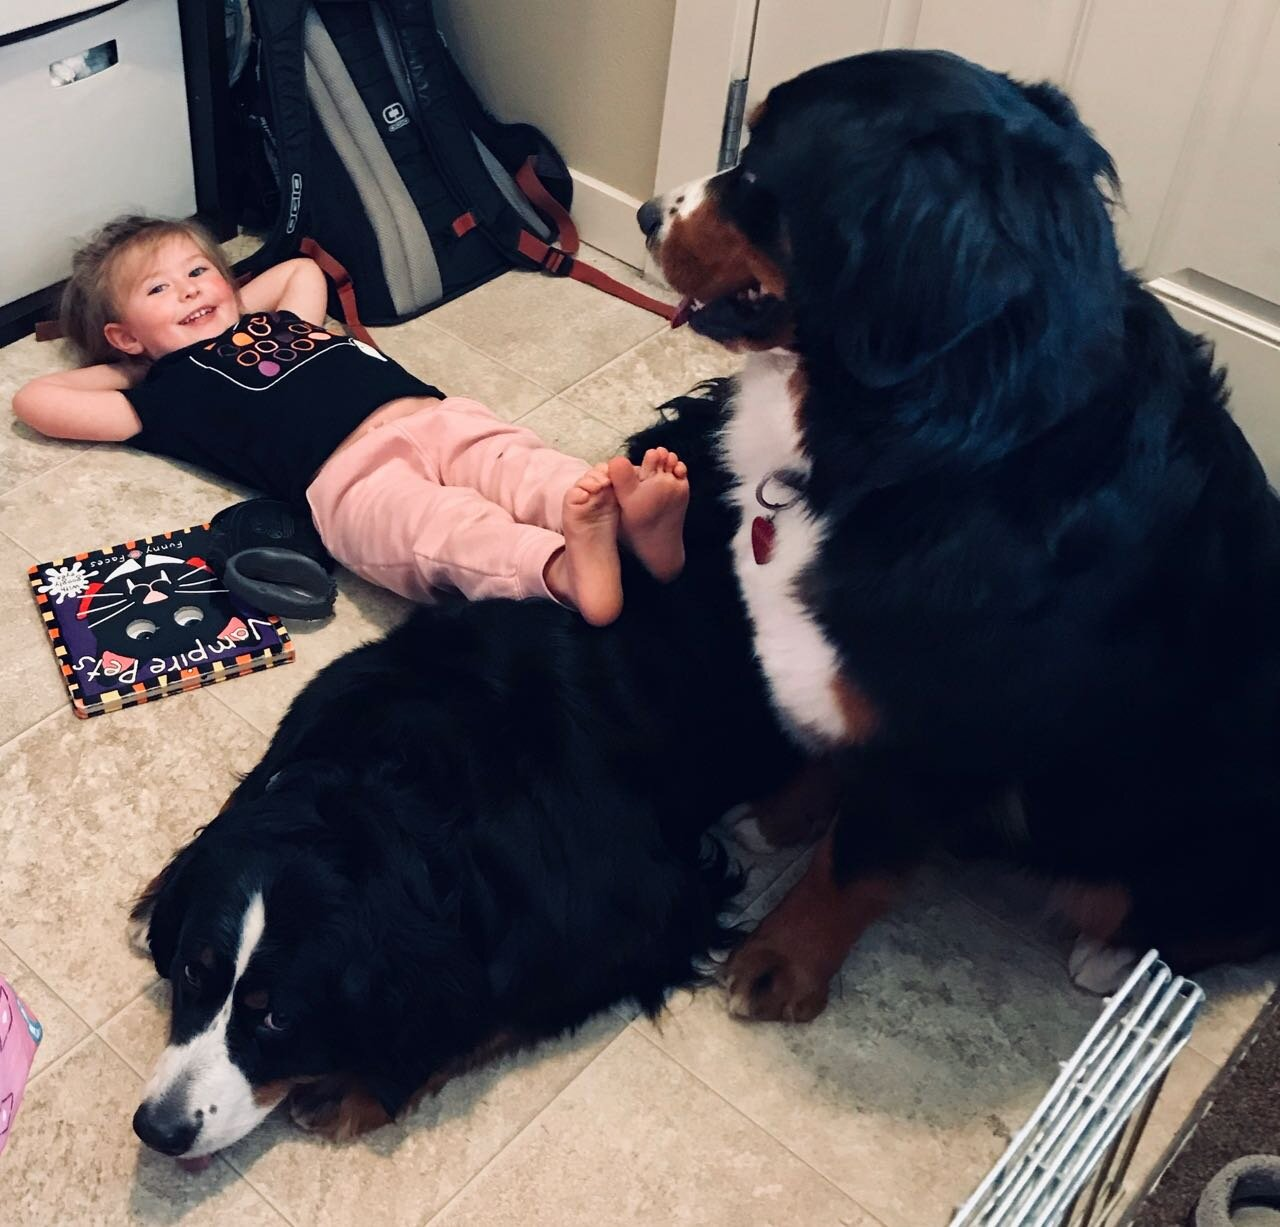 Dogs are free to remove themselves from children's attention at any time. Harper B for Being Patient.